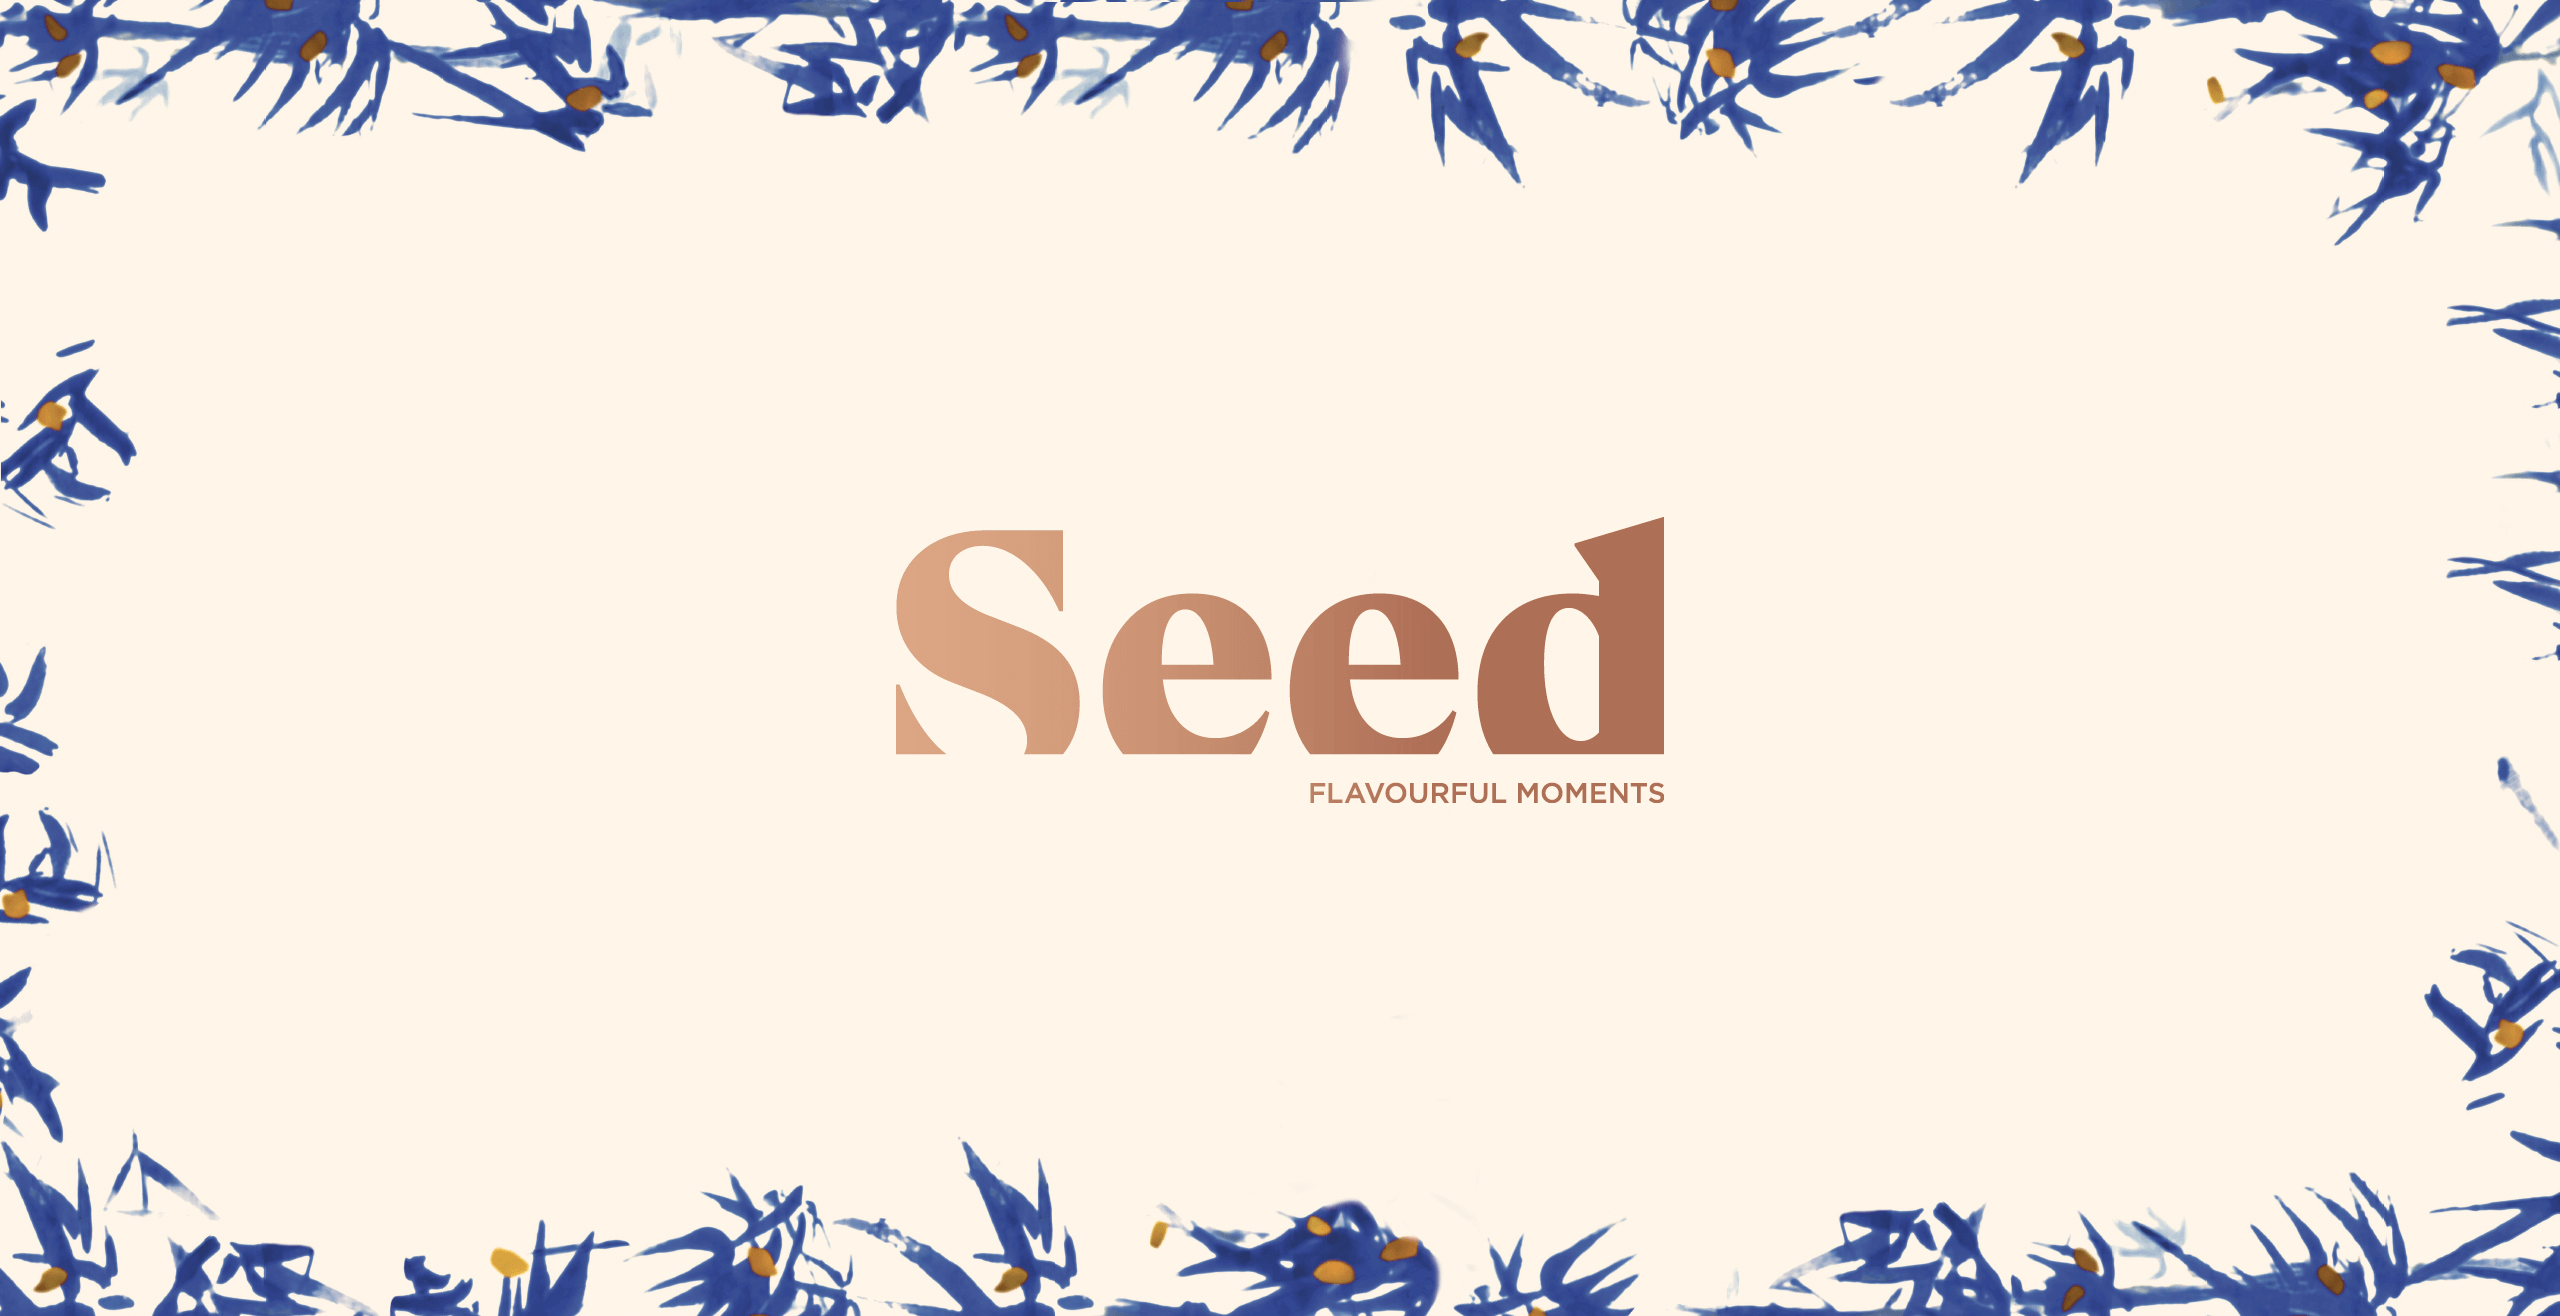 Seed_01 case study